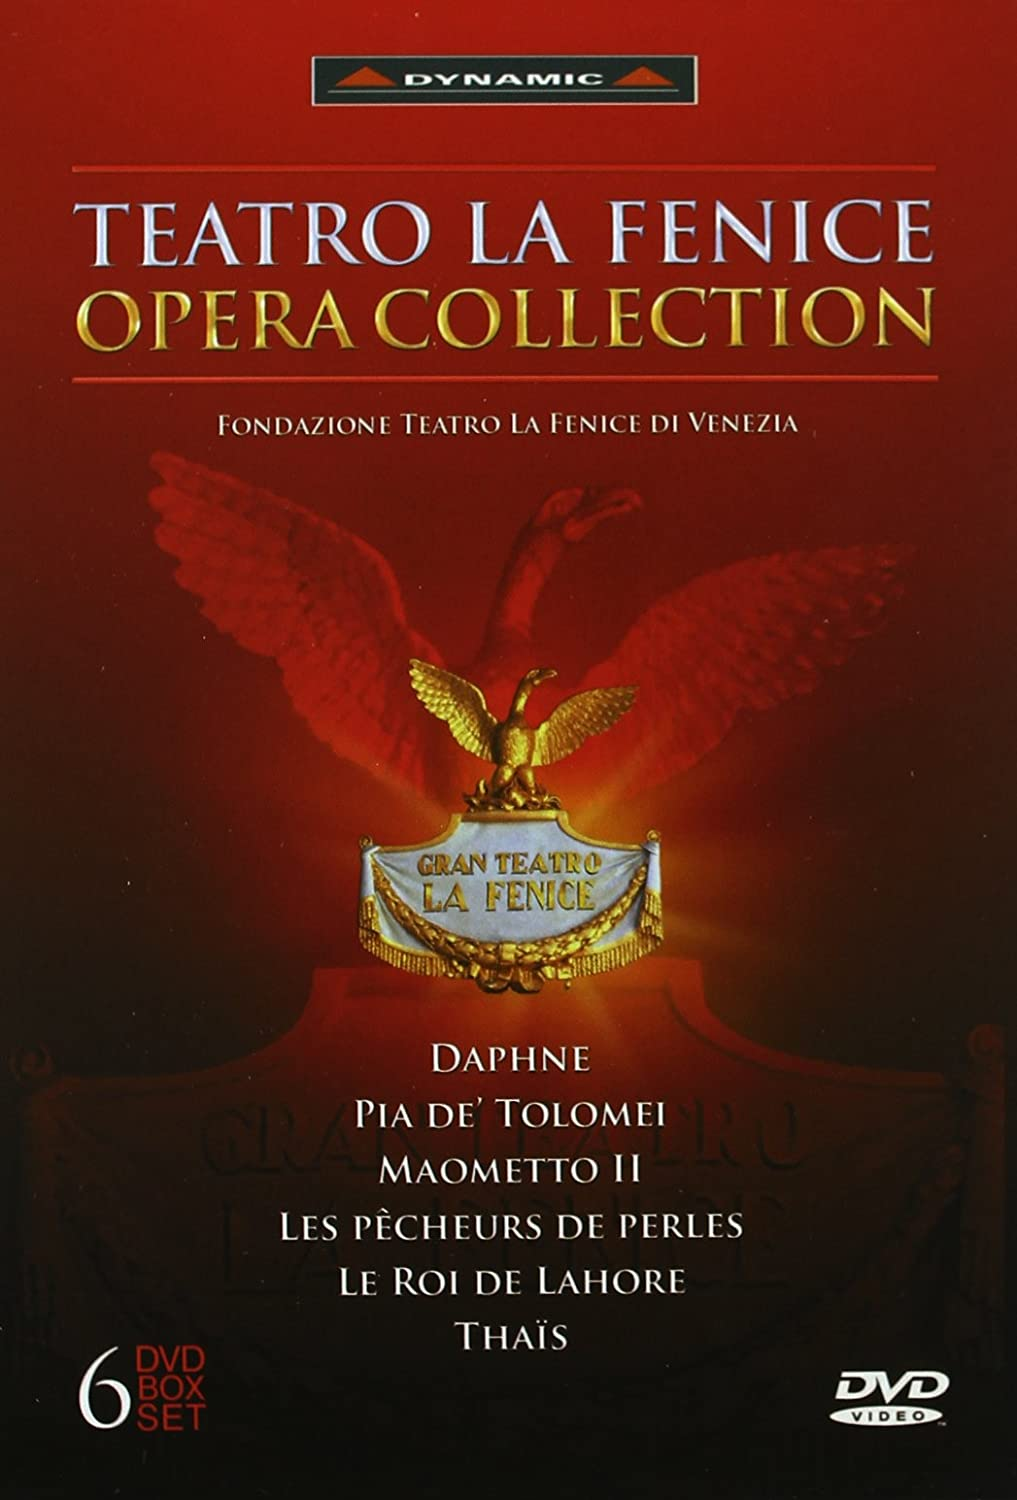 FENICE OPERA COLLECT [DVD] [Import] B000WEWIZE